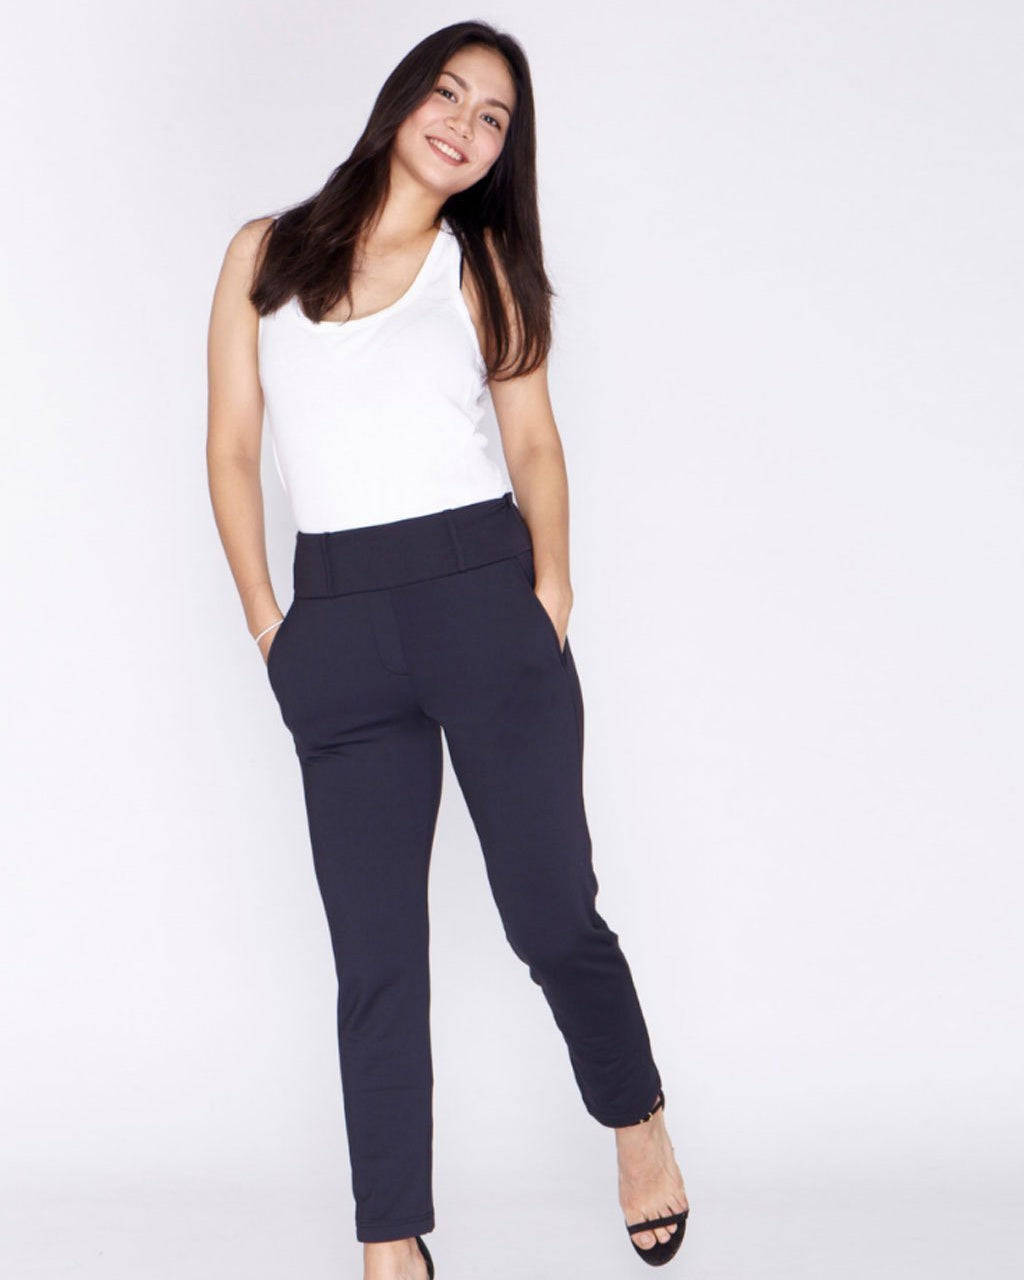 The Everyday Pant - Onyx Black